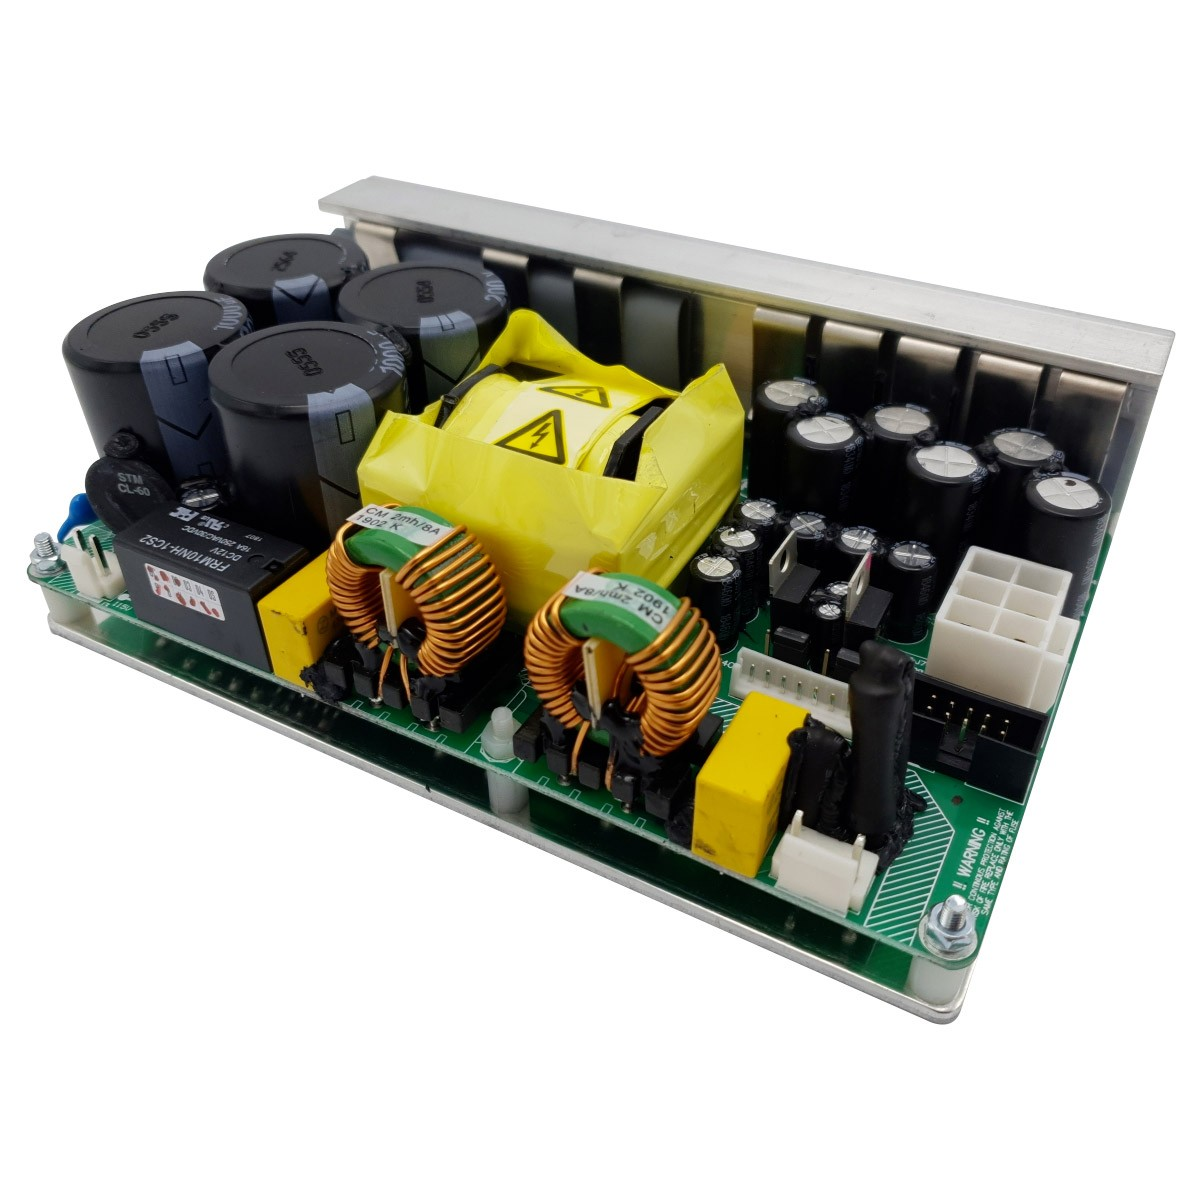 HYPEX SMPS1200A180 Switching Power Supply Module 1200W 2x46V